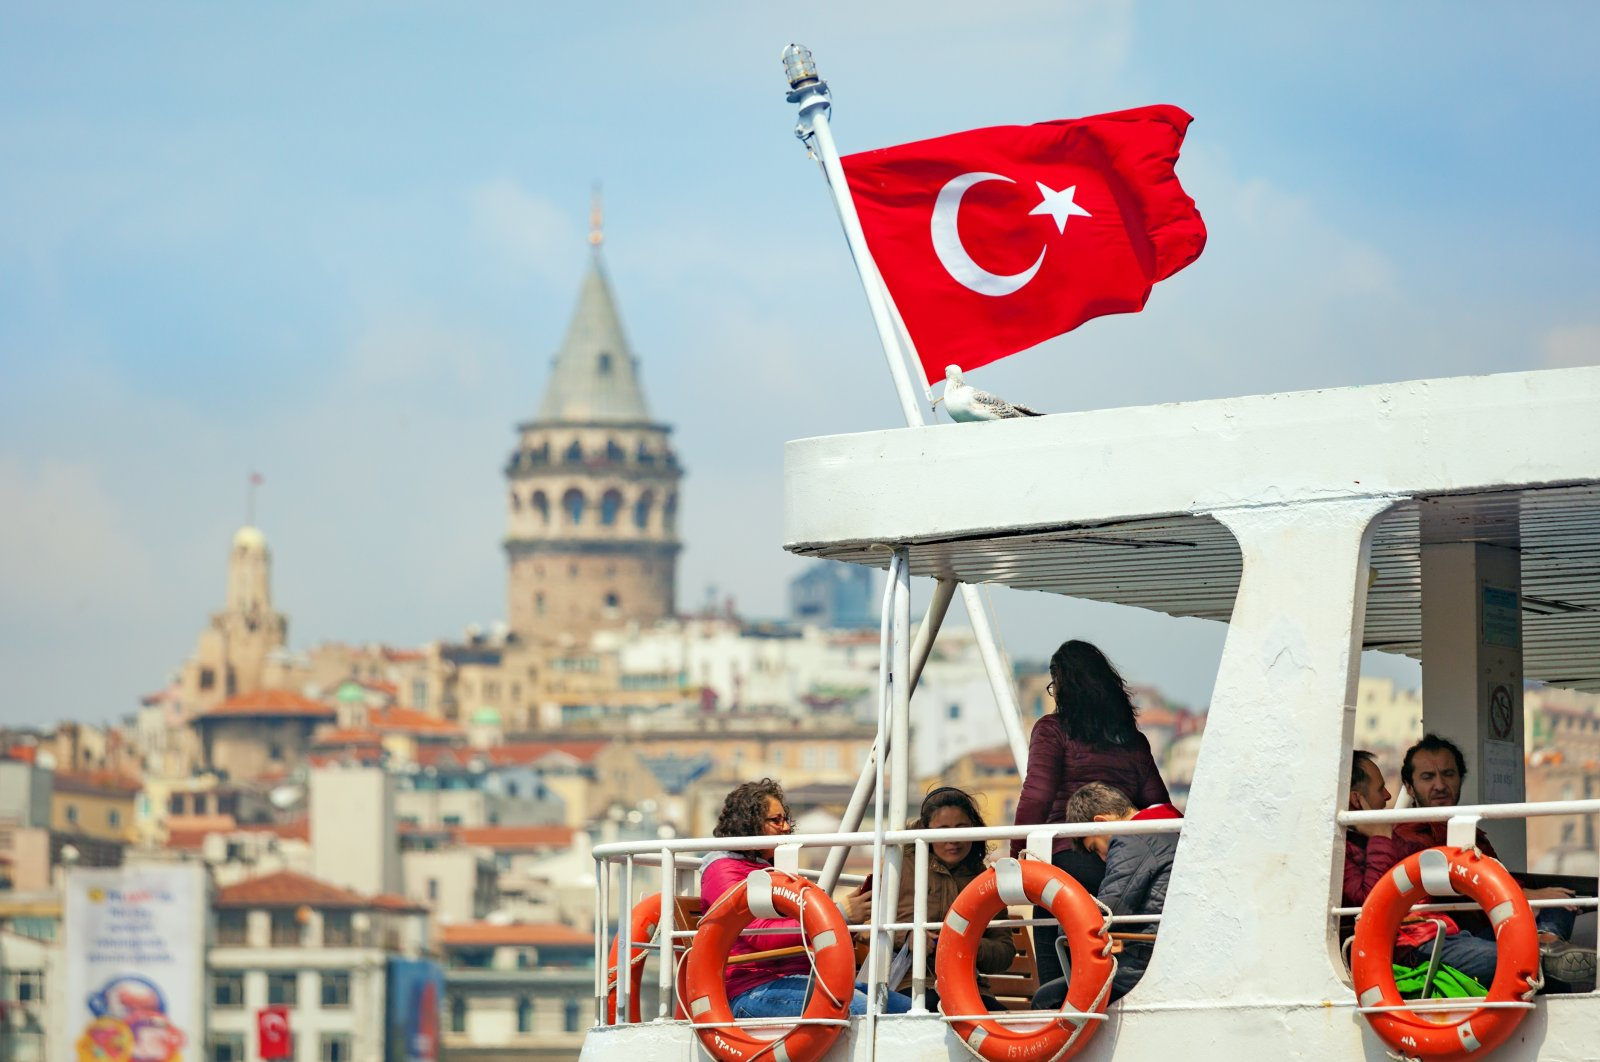 Tourists travel by ferry across the Golden Horn inlet with the famous Galata Tower in the background, Istanbul, Turkey, April 23, 2017. (Shutterstock Photo)